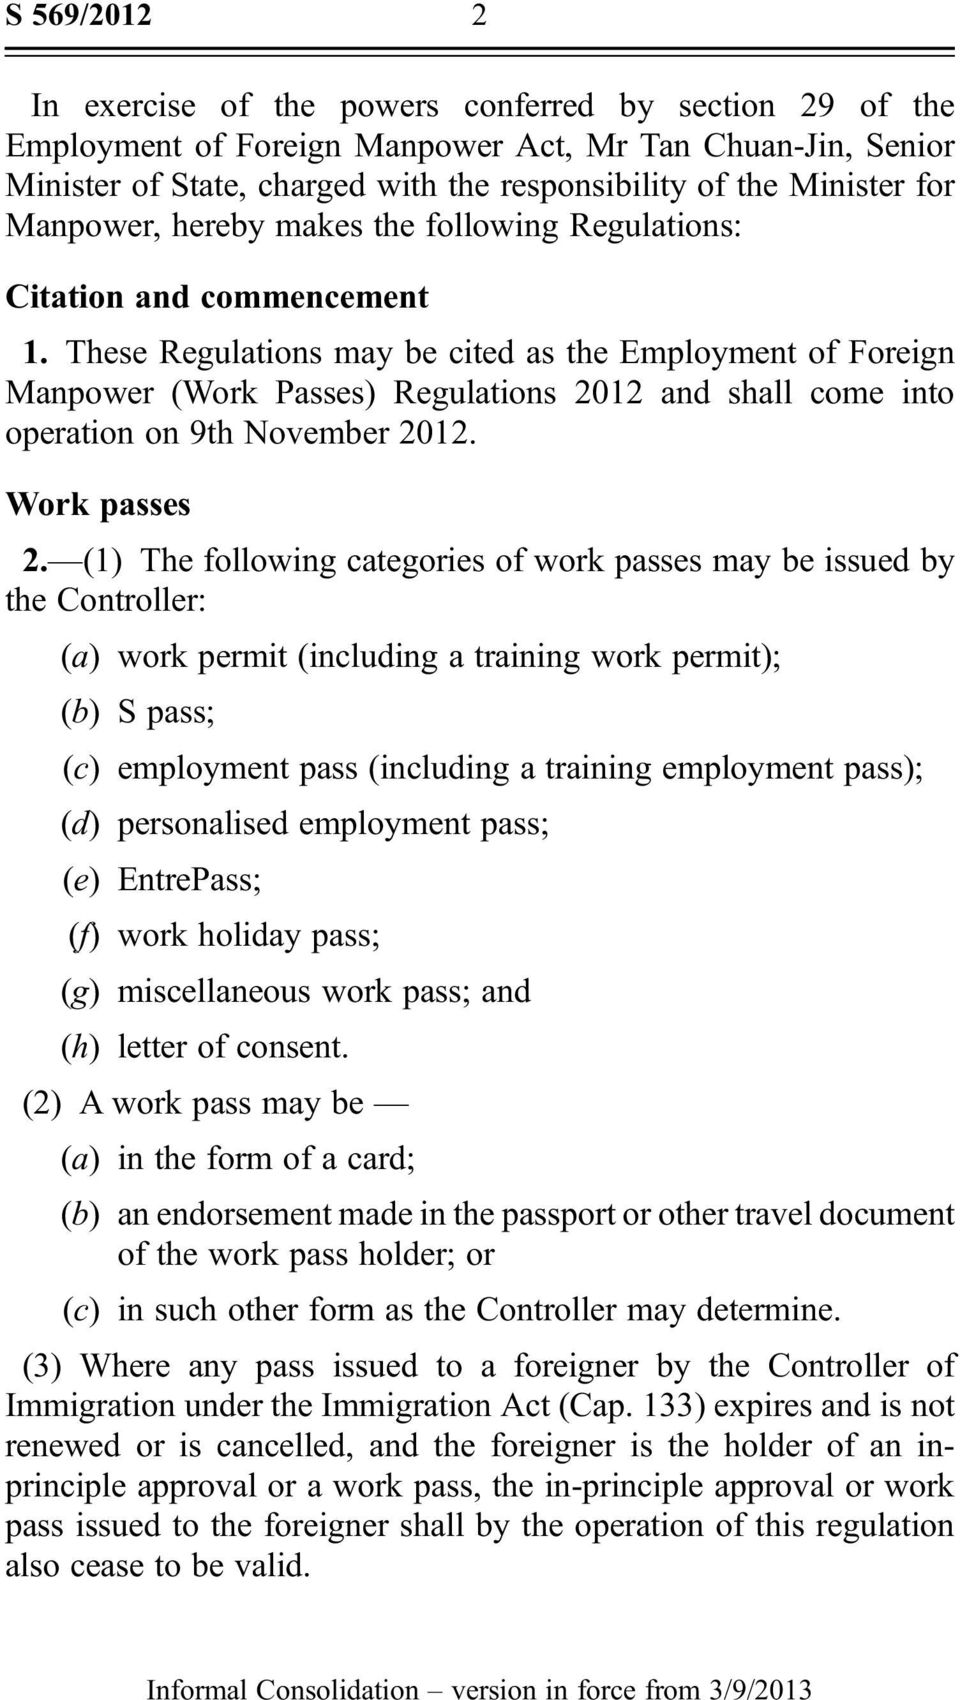 These Regulations may be cited as the Employment of Foreign Manpower (Work Passes) Regulations 2012 and shall come into operation on 9th November 2012. Work passes 2.